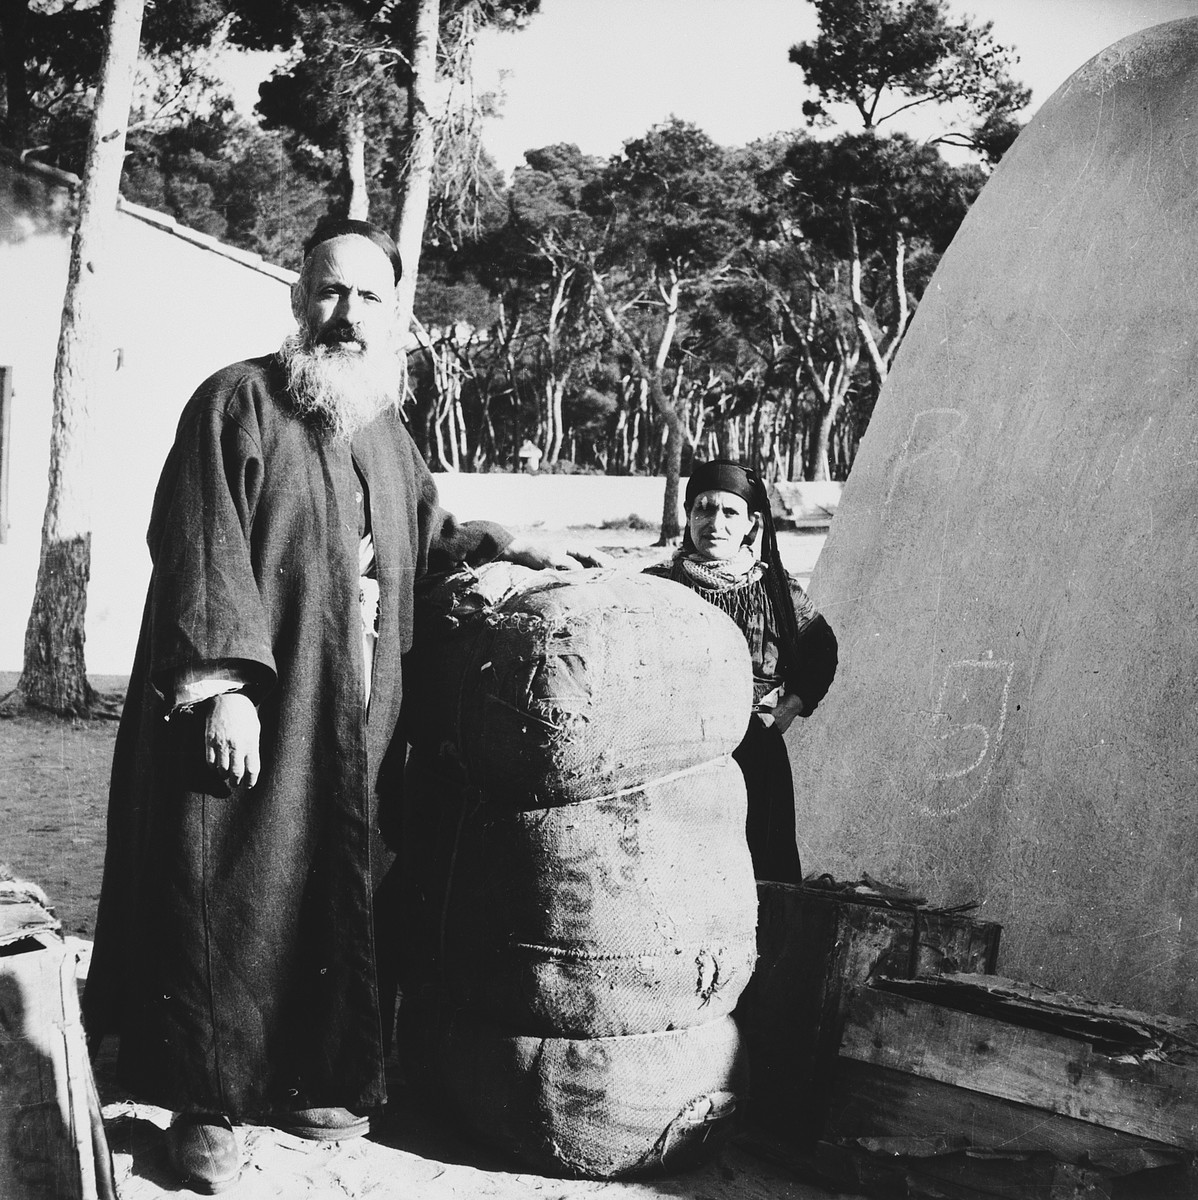 A Morrocan-Jewish man and woman stand next to a large bundle in the Los Arenas camp while waiting to immigrate to Palestine.